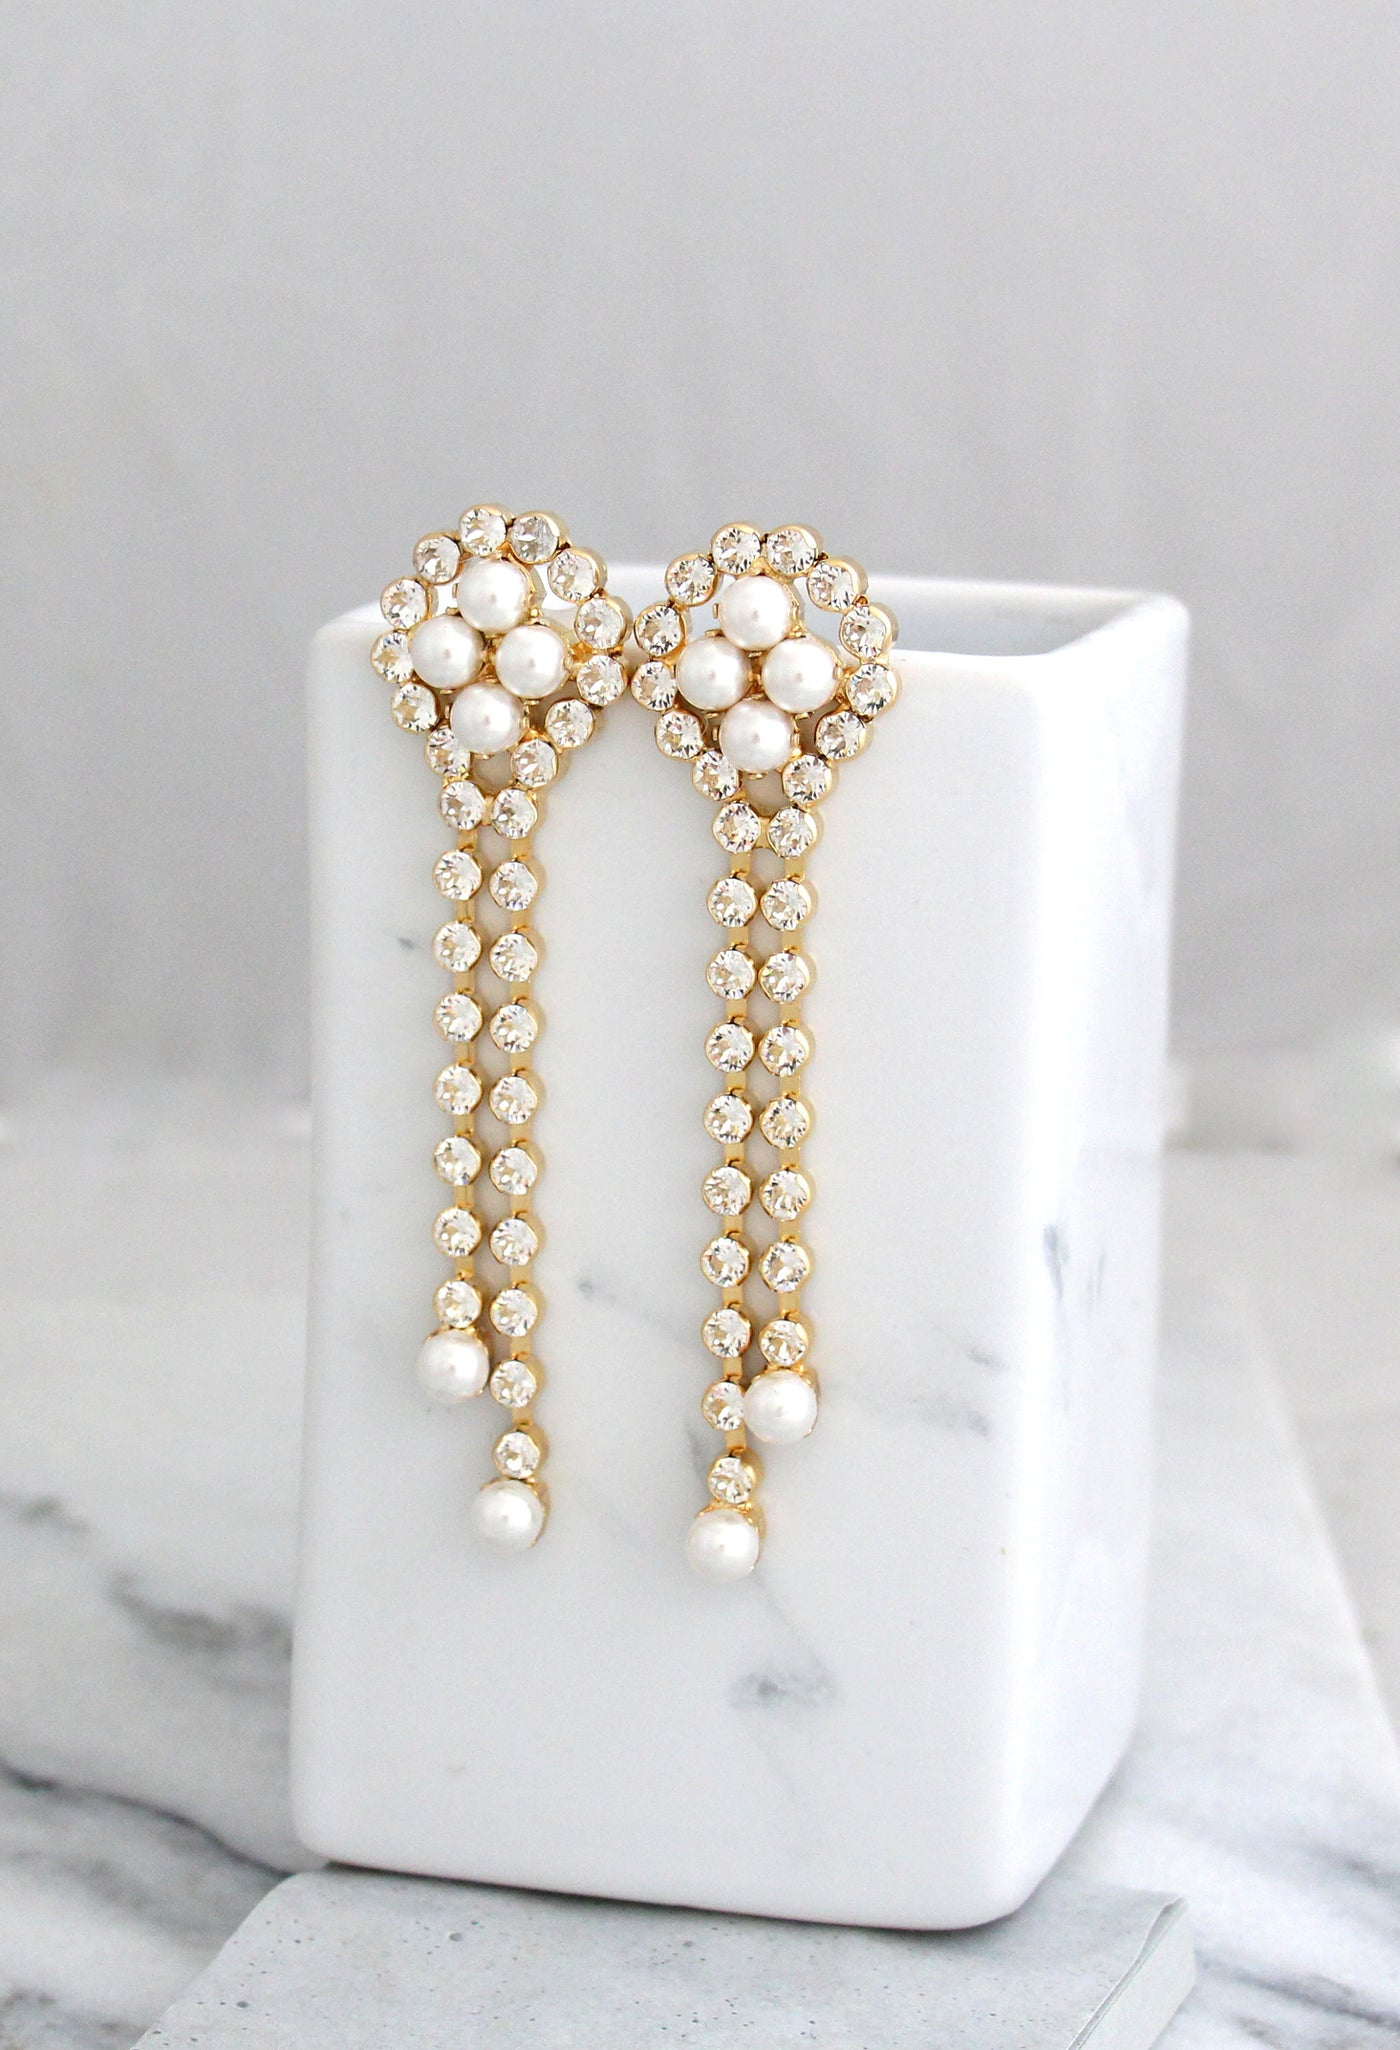 Olla White Pearl Crystal Swarovski Chandelier Earrings